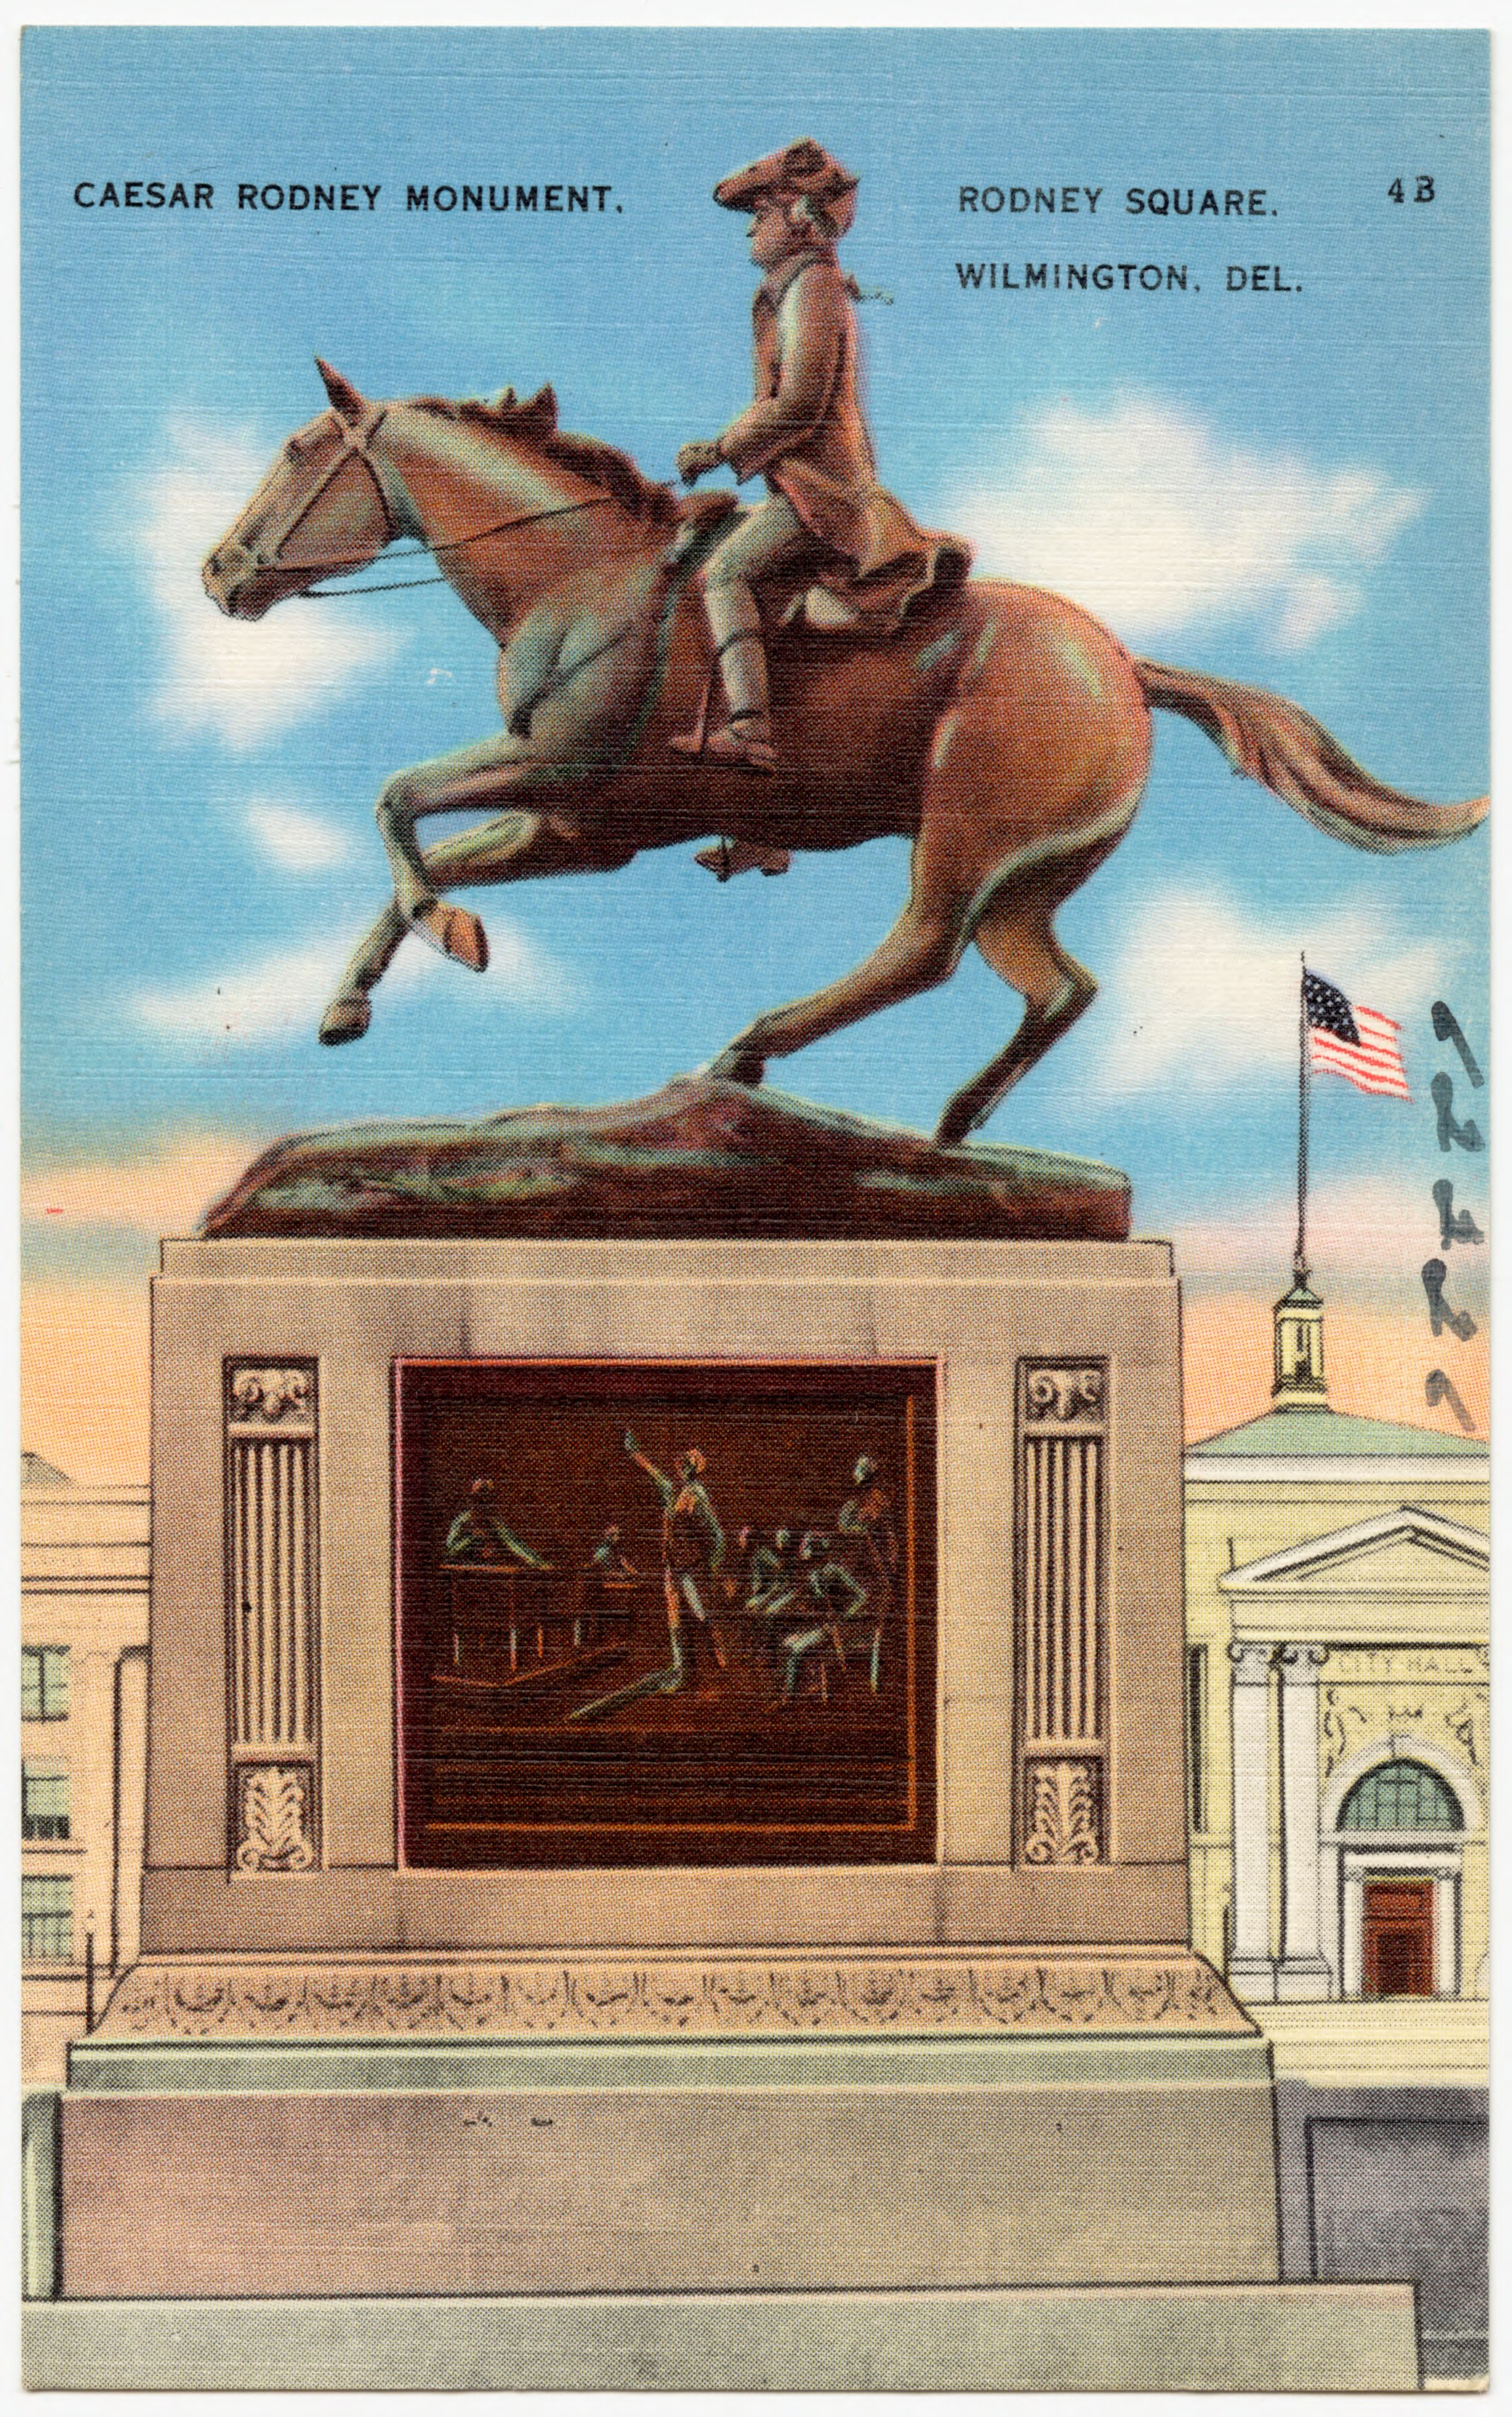 the life and times of caesar rodney